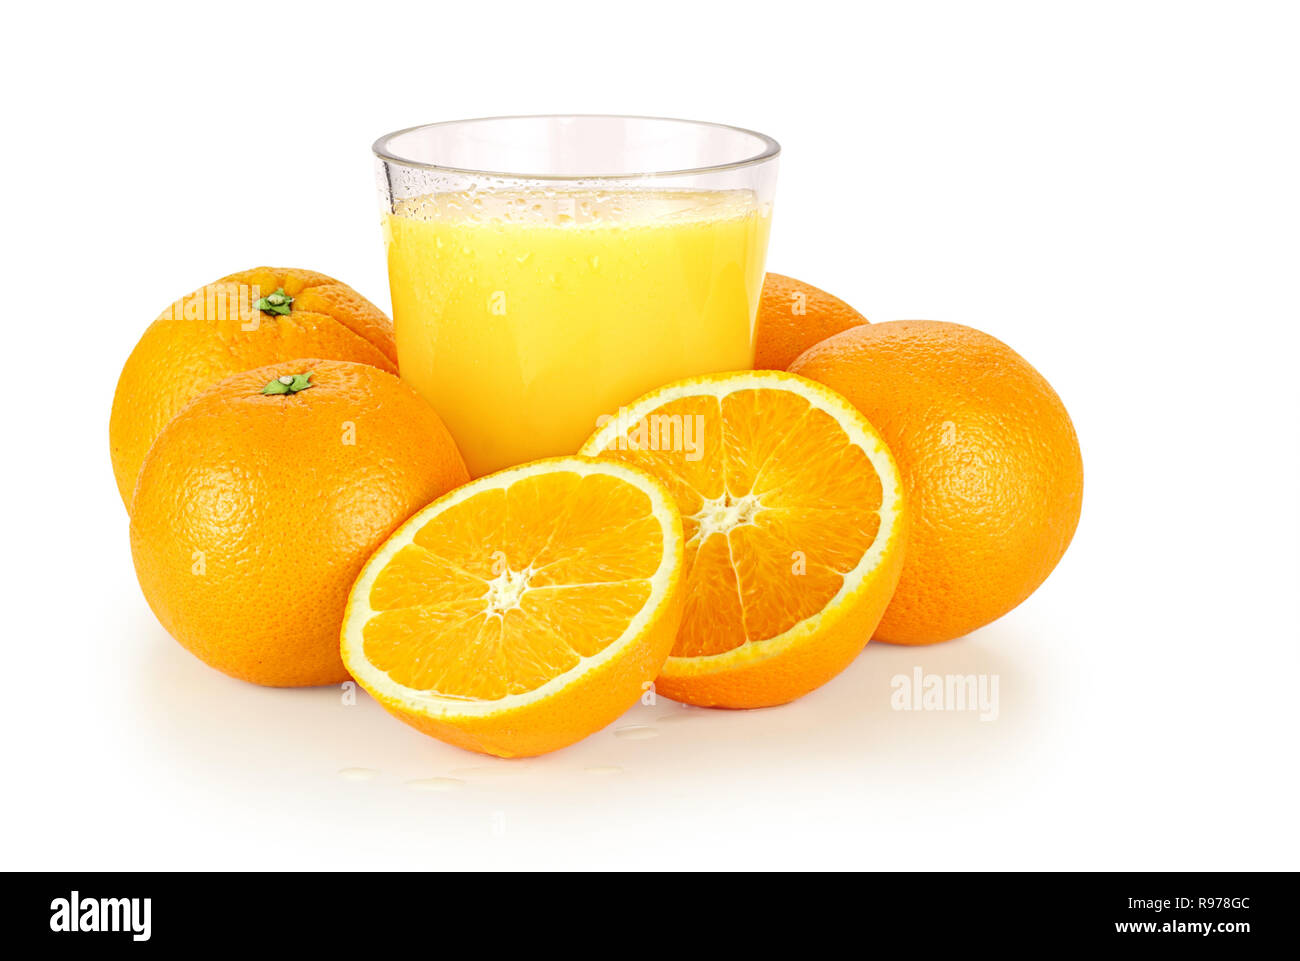 16004856 - fresh orange juice and oranges over a white background with shadow. - Stock Image